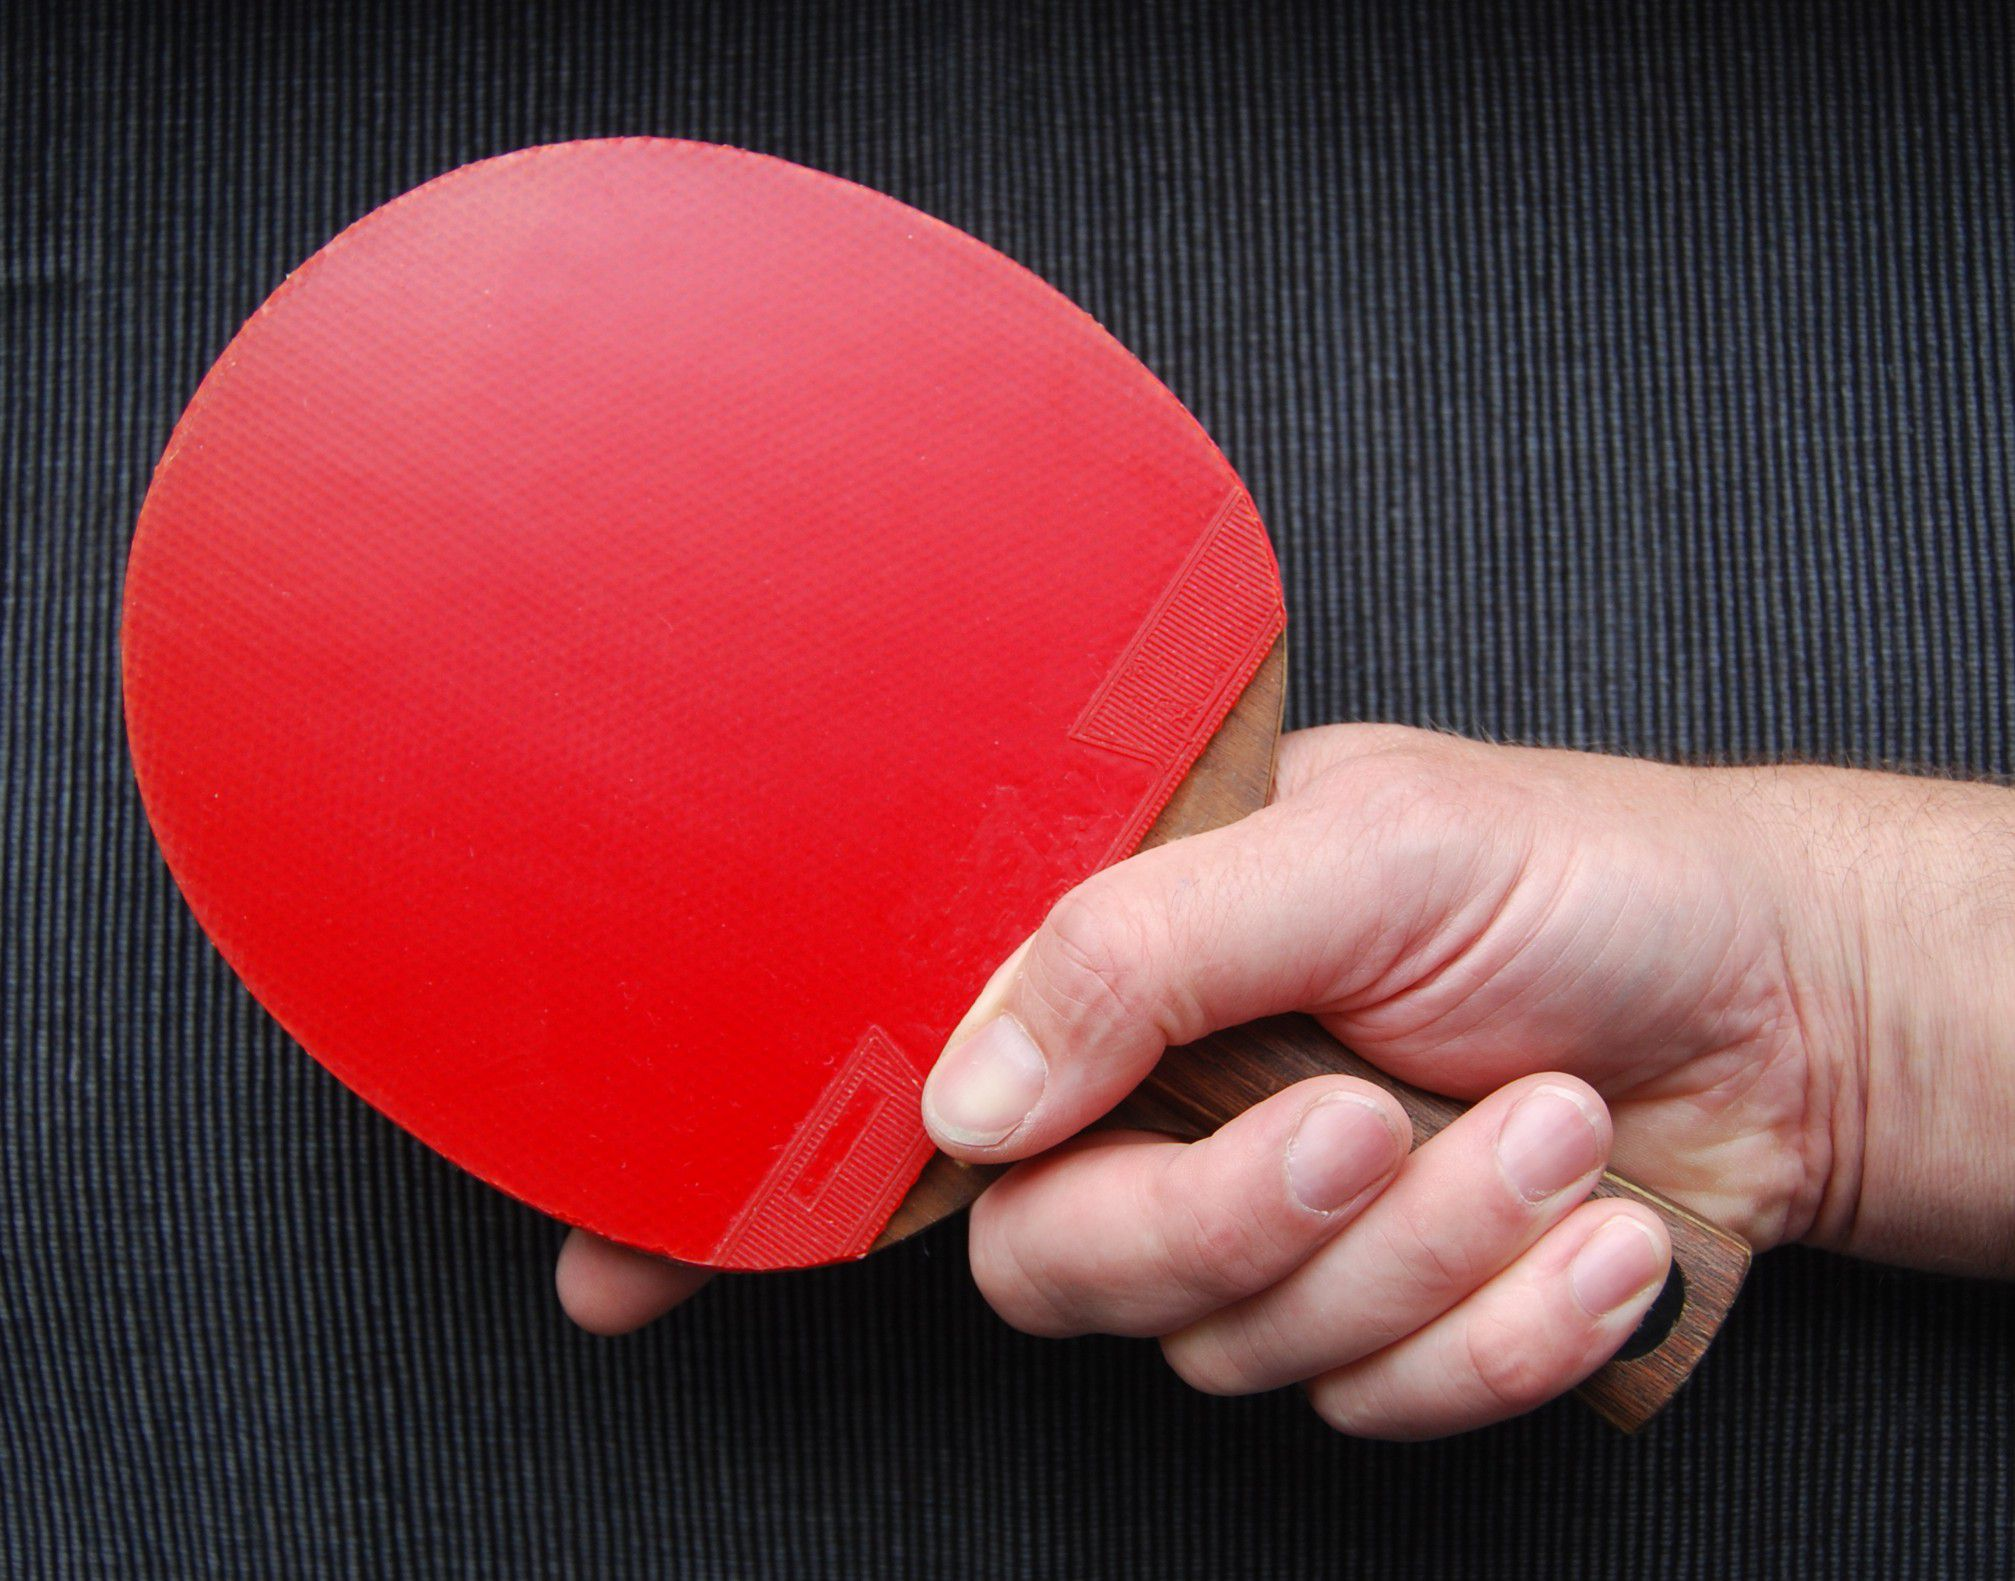 Grip Types for Holding a Table Tennis Paddle